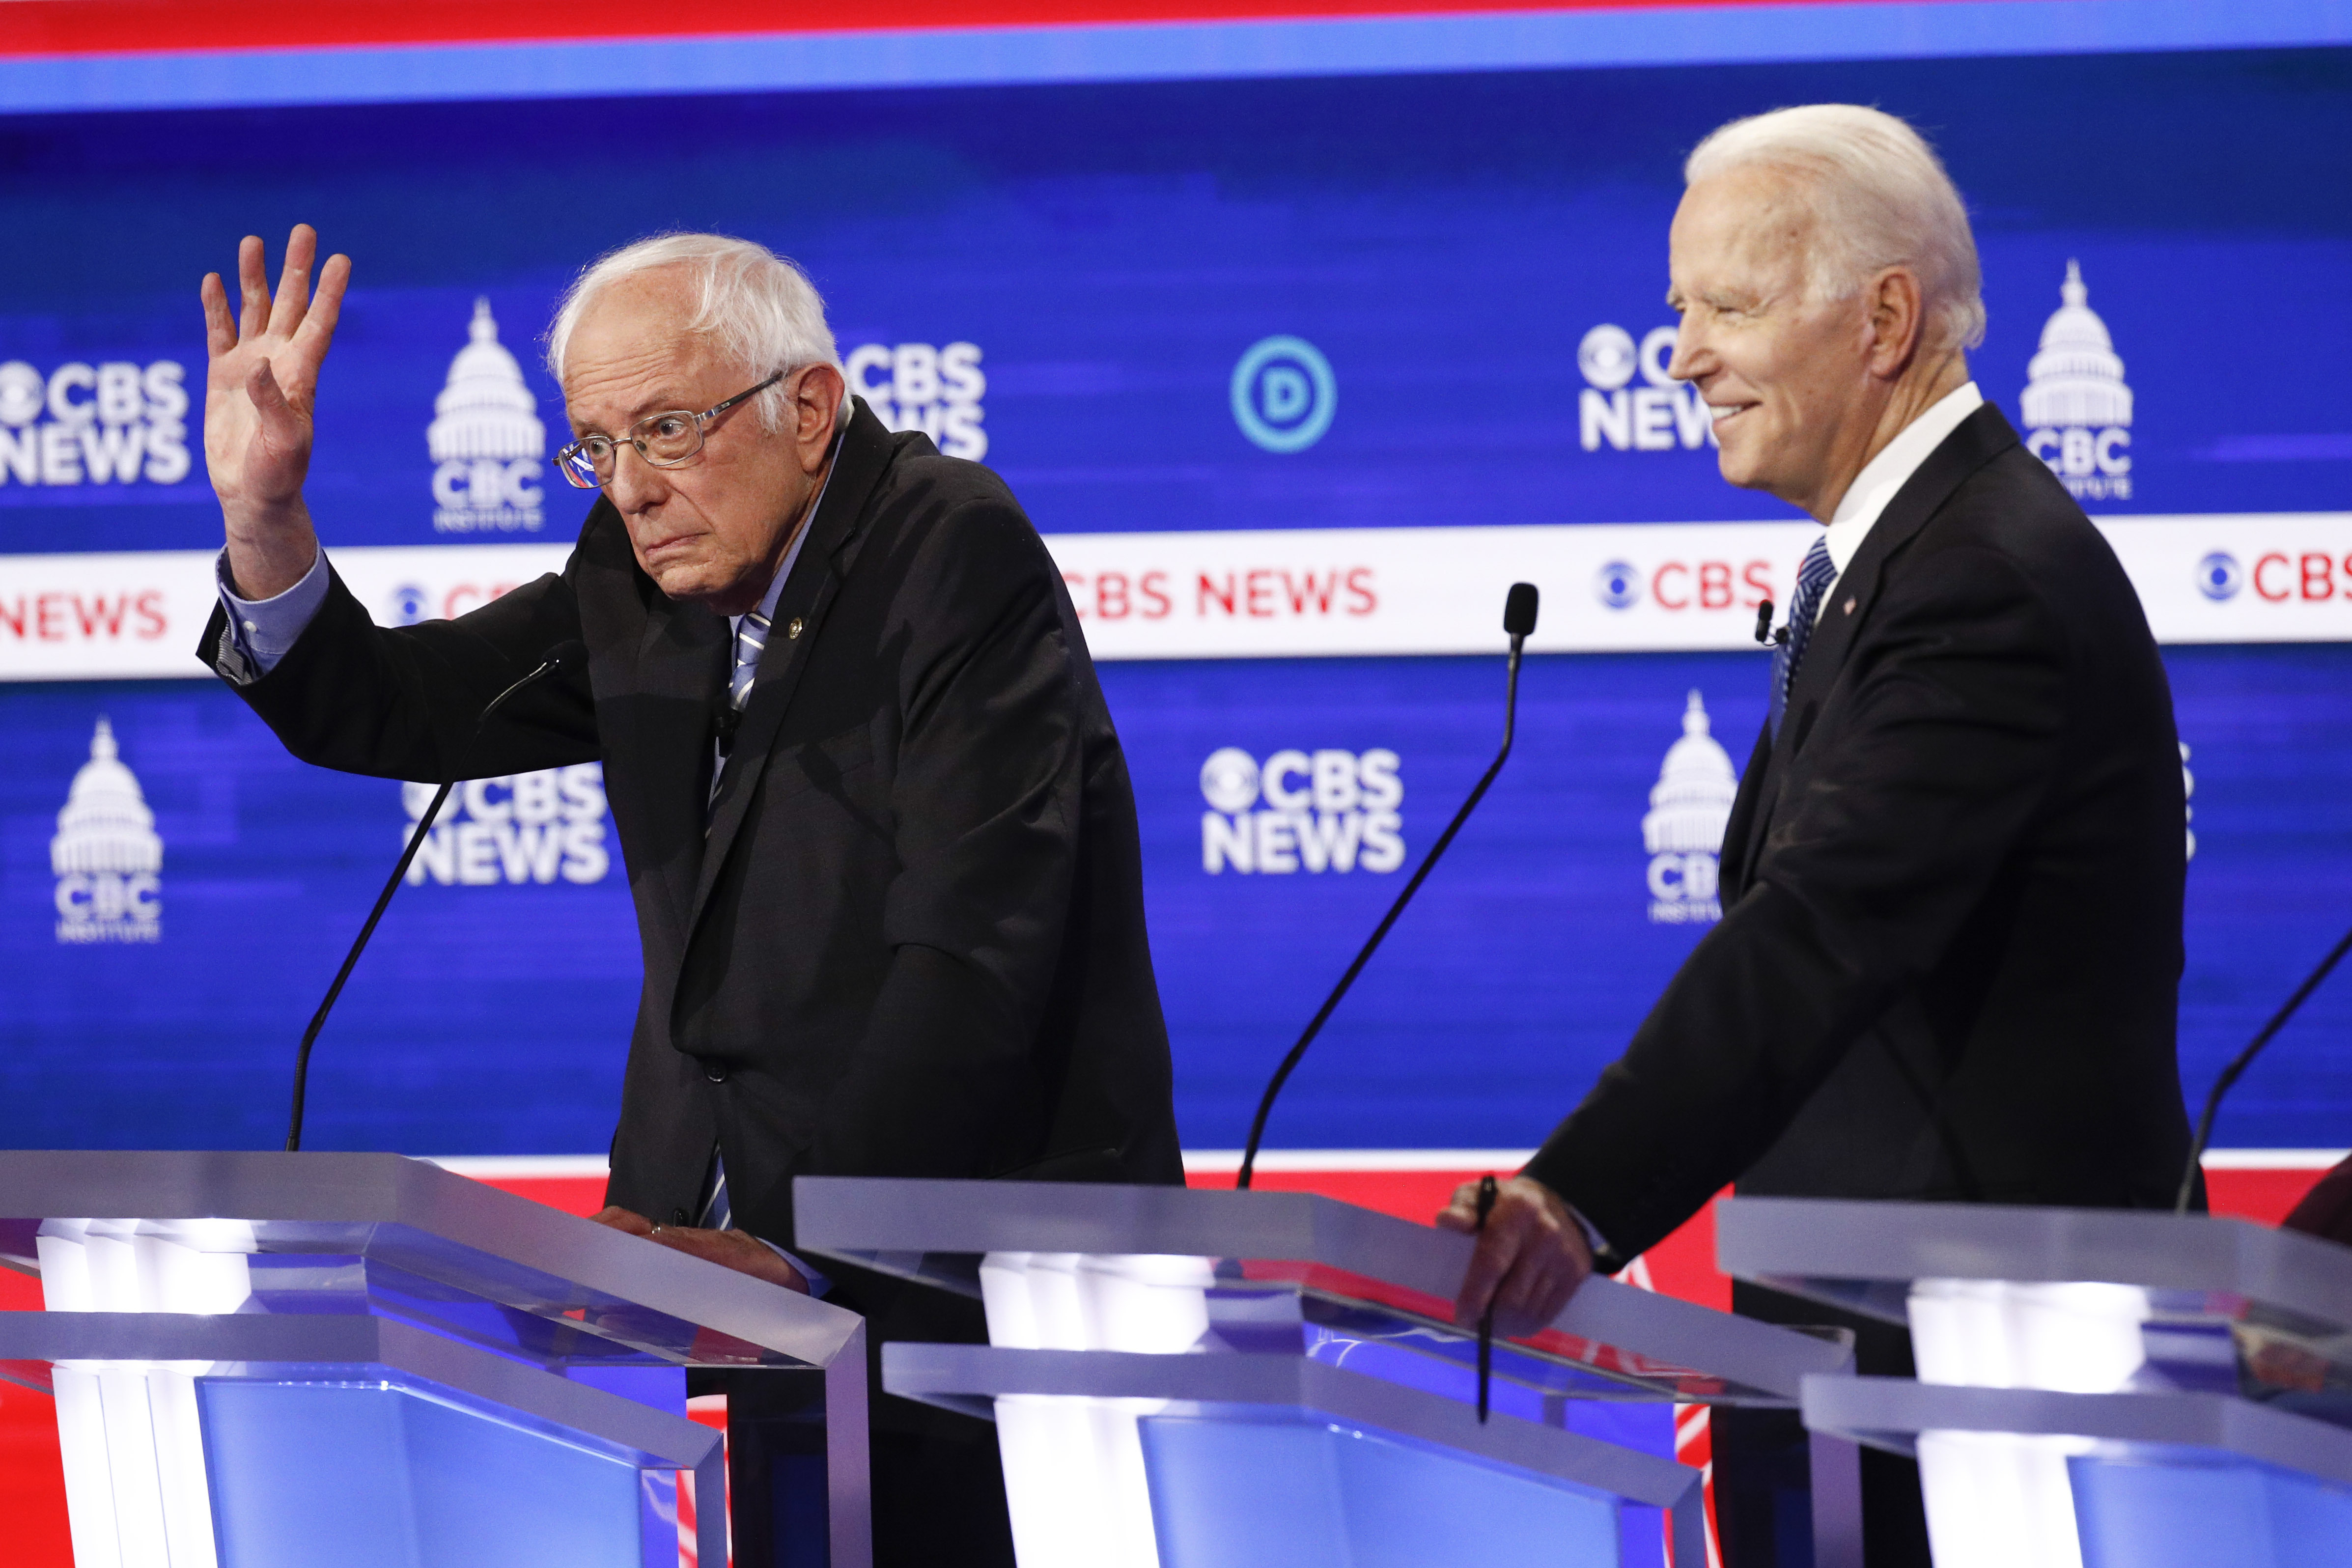 , Bernie and Bloomberg Battle Over Whose Weed Plan Is the Dankest, Saubio Making Wealth